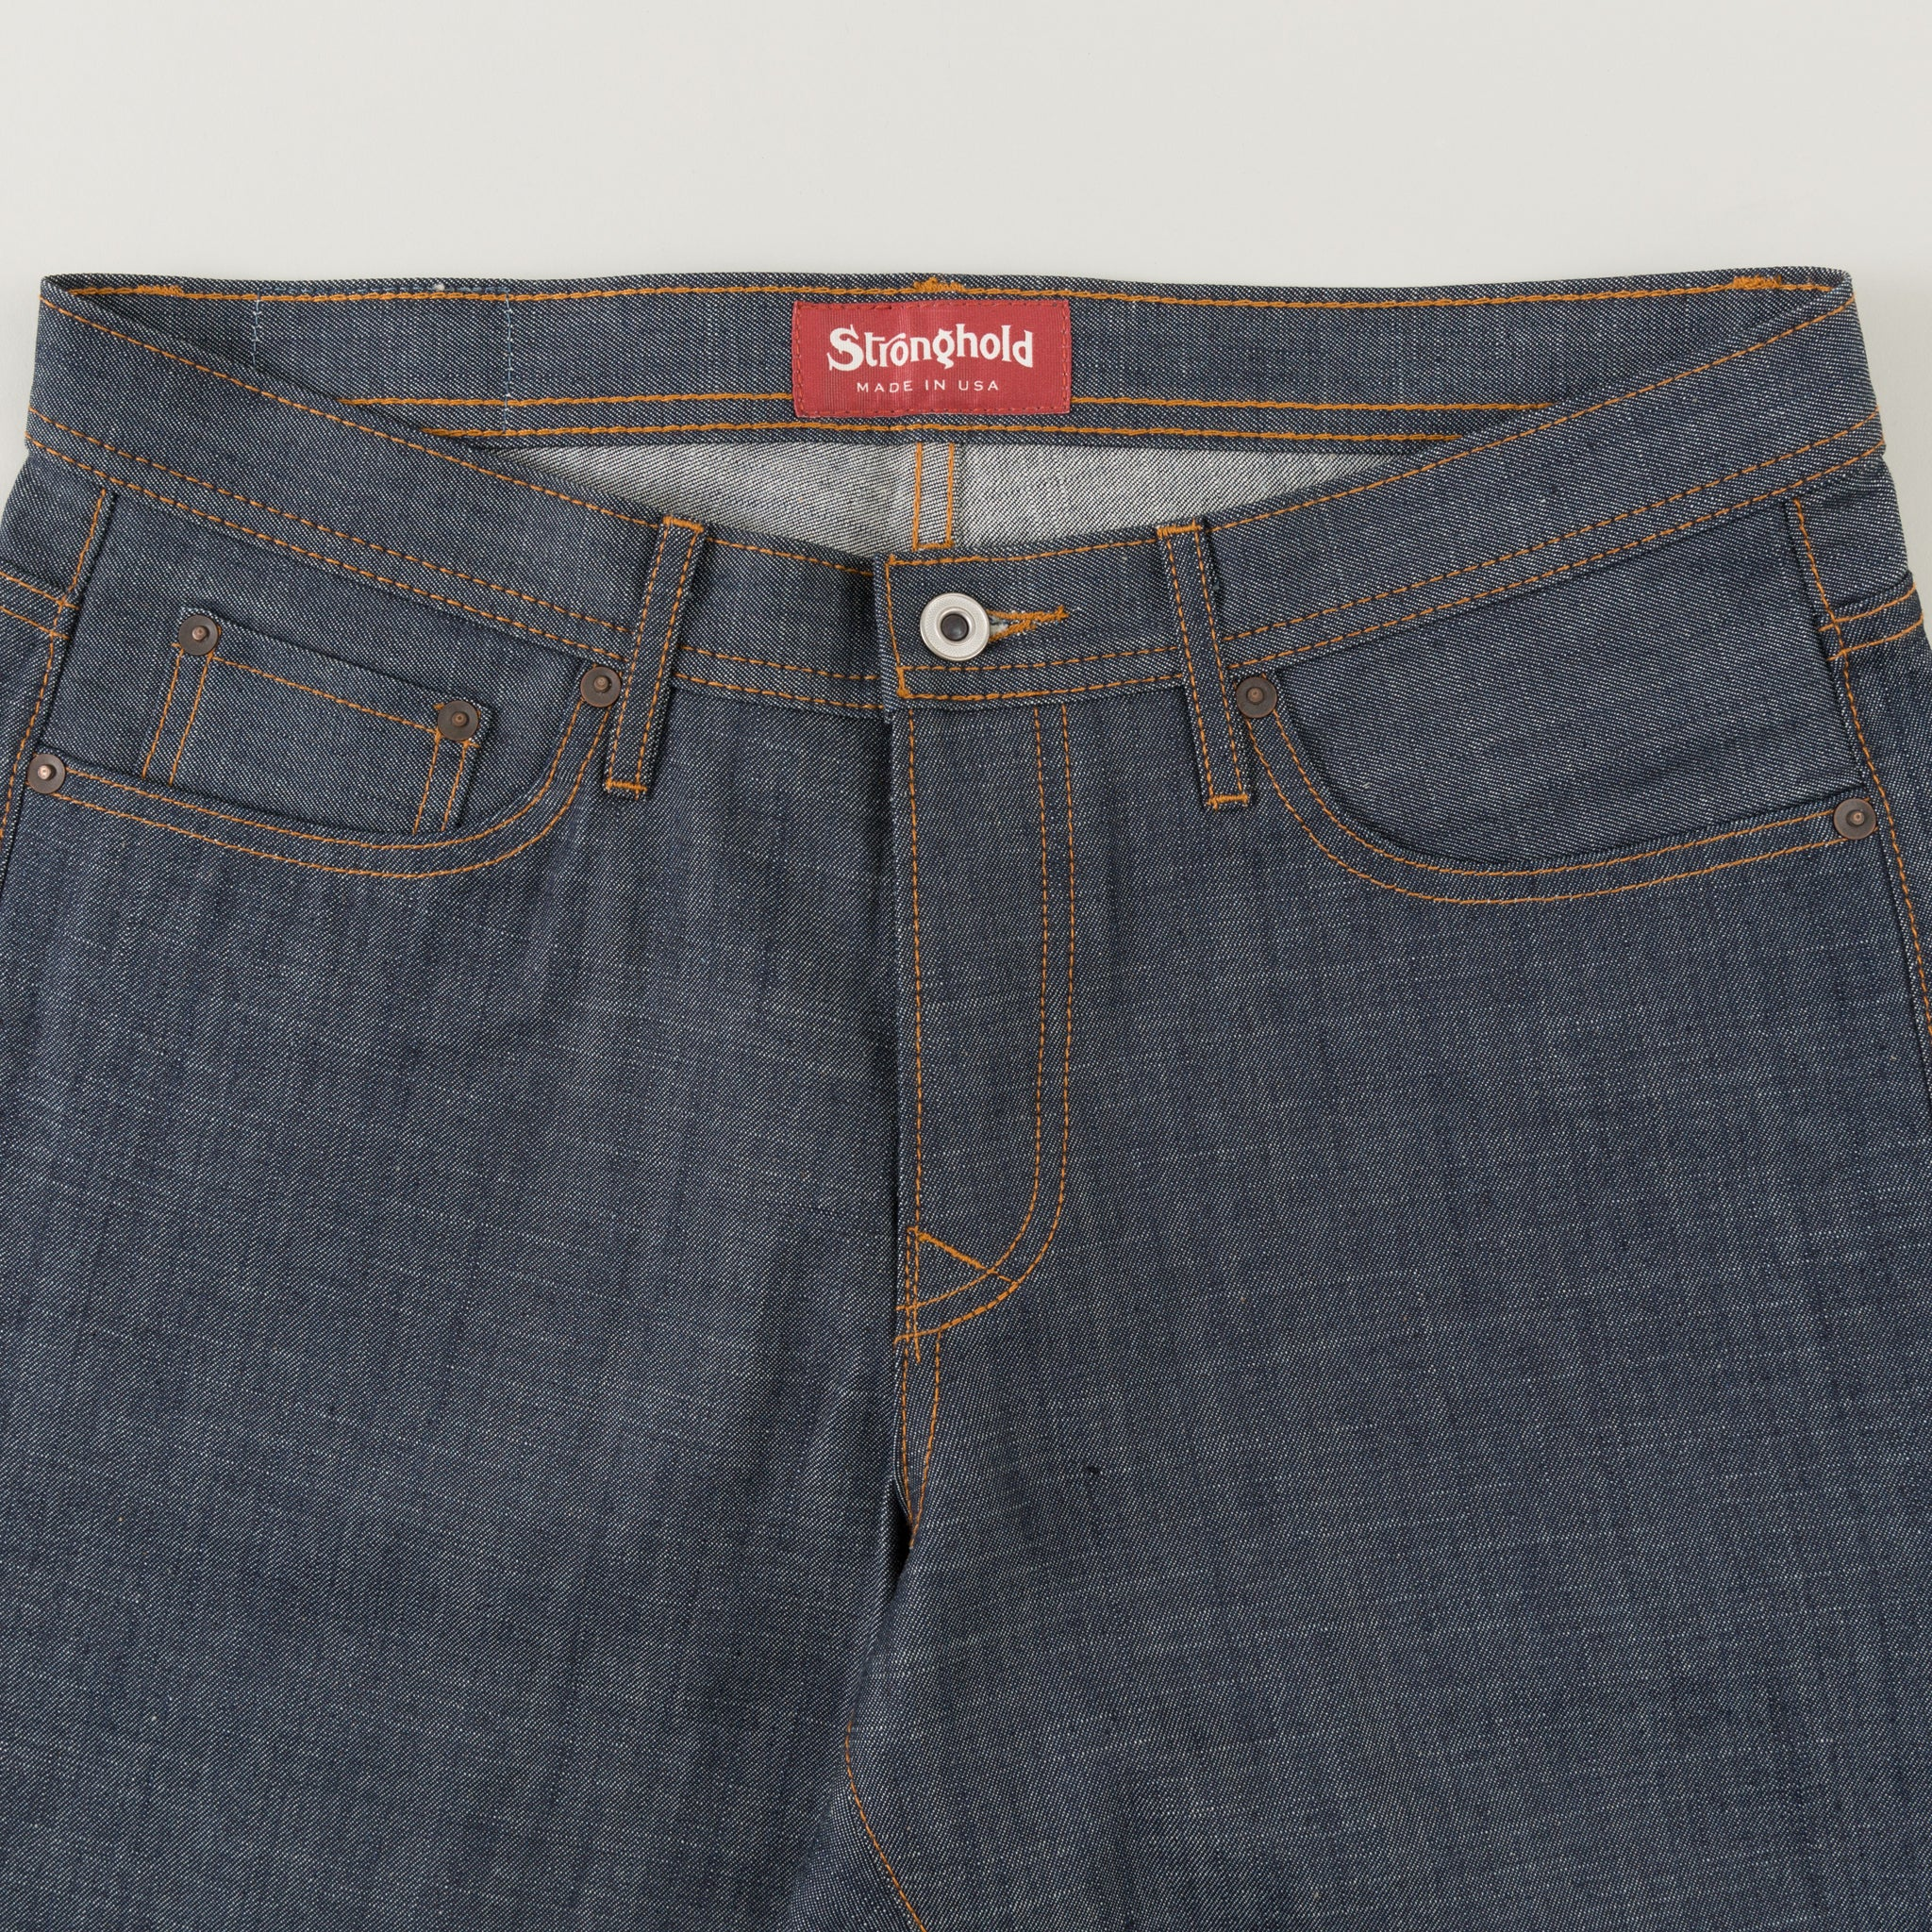 Original Fit 9 Oz Indigo Selvedge Denim The Stronghold